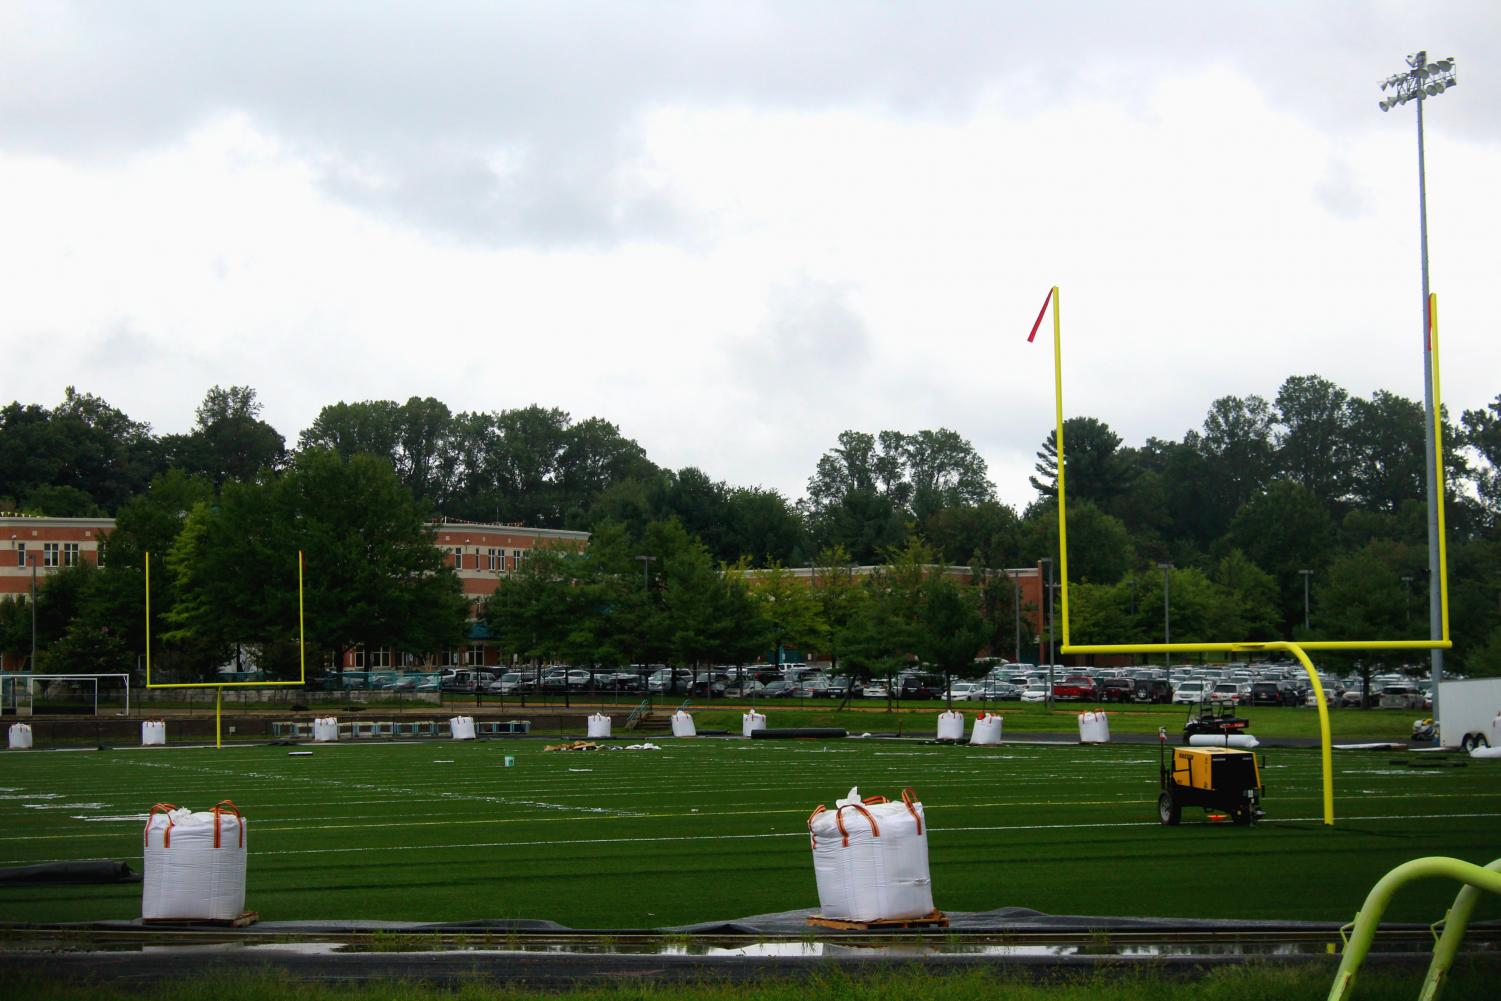 Construction on the turf field pauses for the day due to rain. After four months of work, the field remains unready for use.